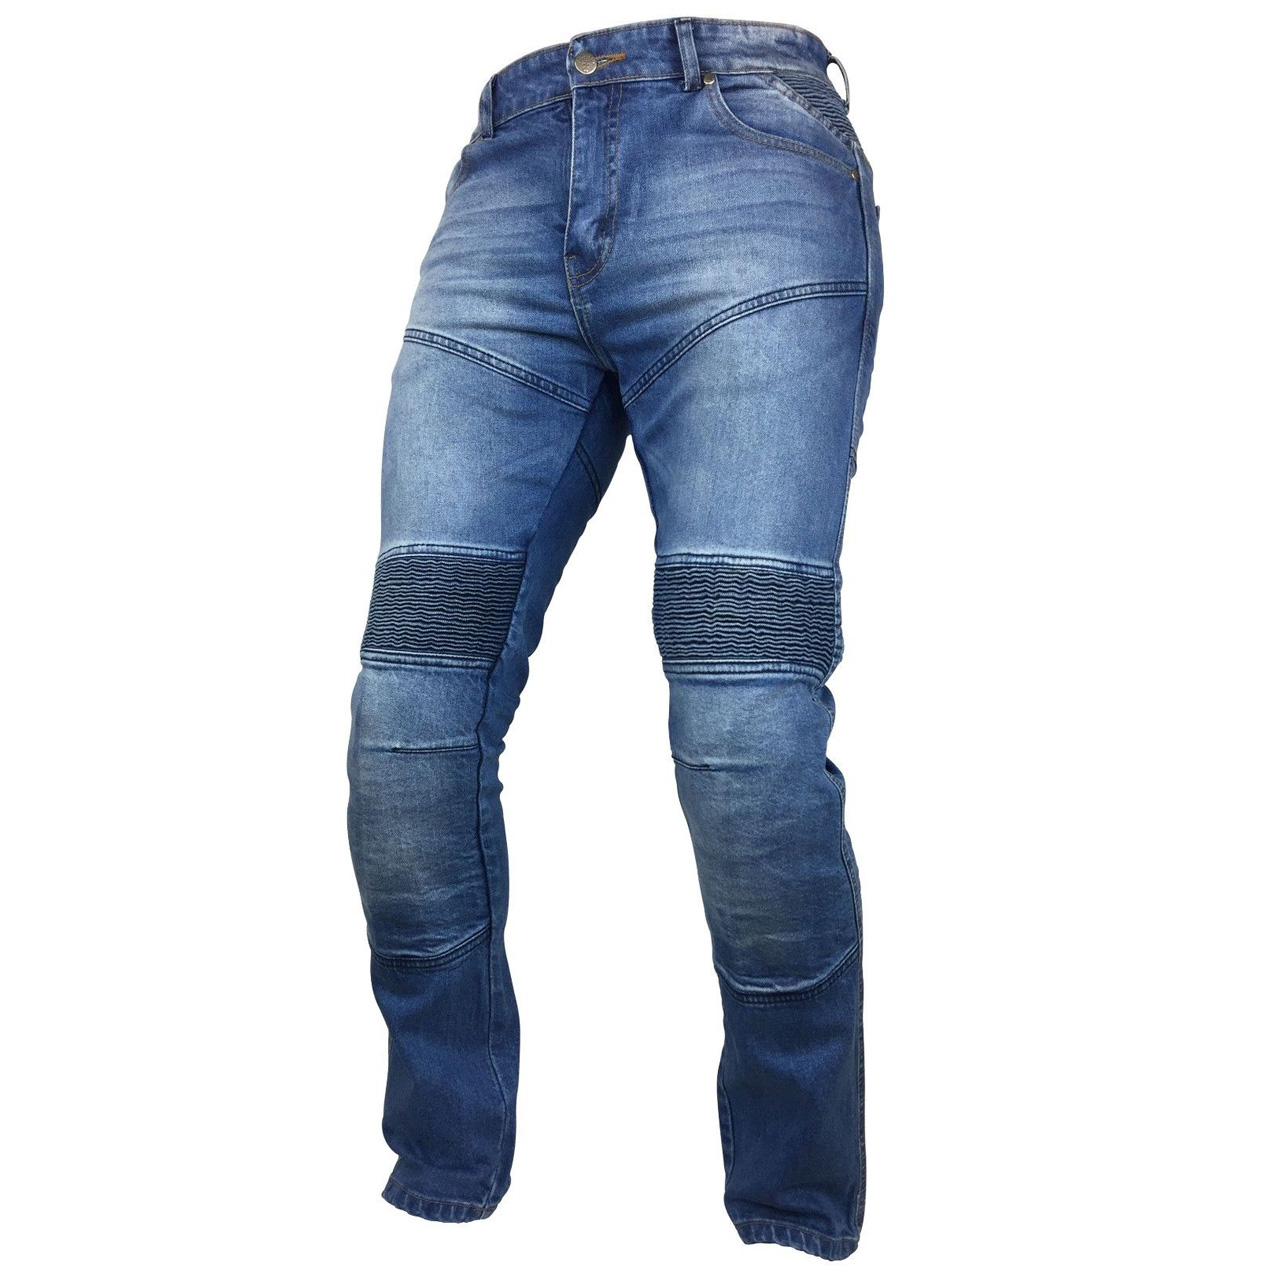 Mens Denim Motorbike Sports Jeans With Protective Lined